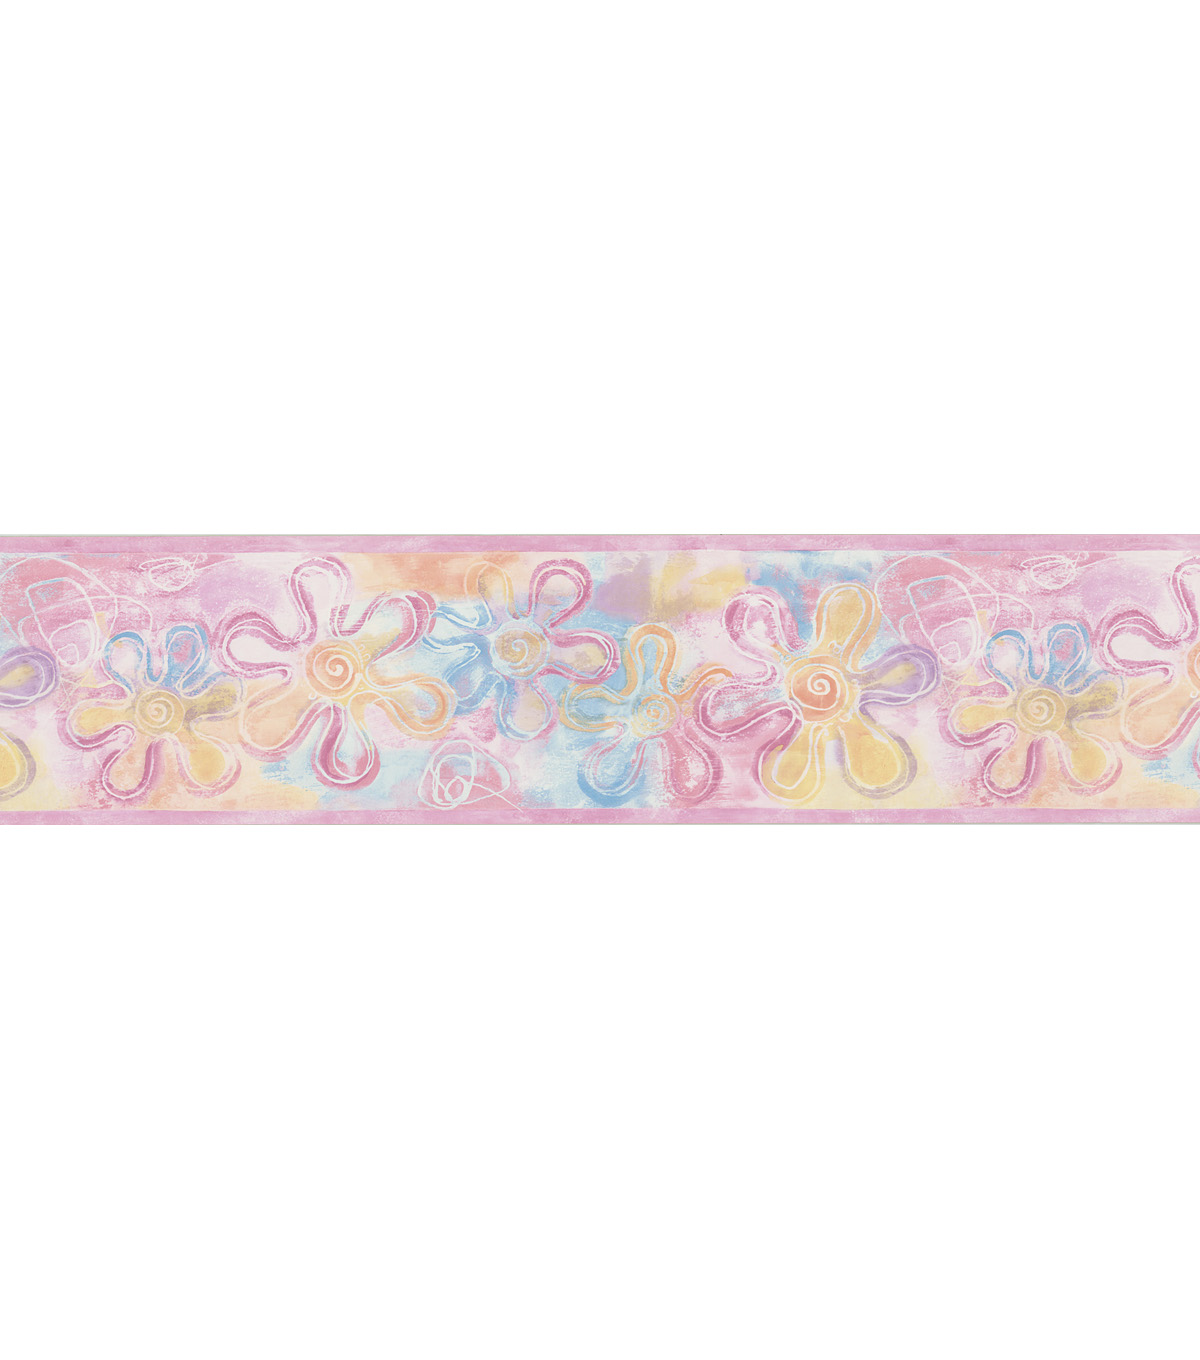 Flower Stamps Wallpaper Border, Pink